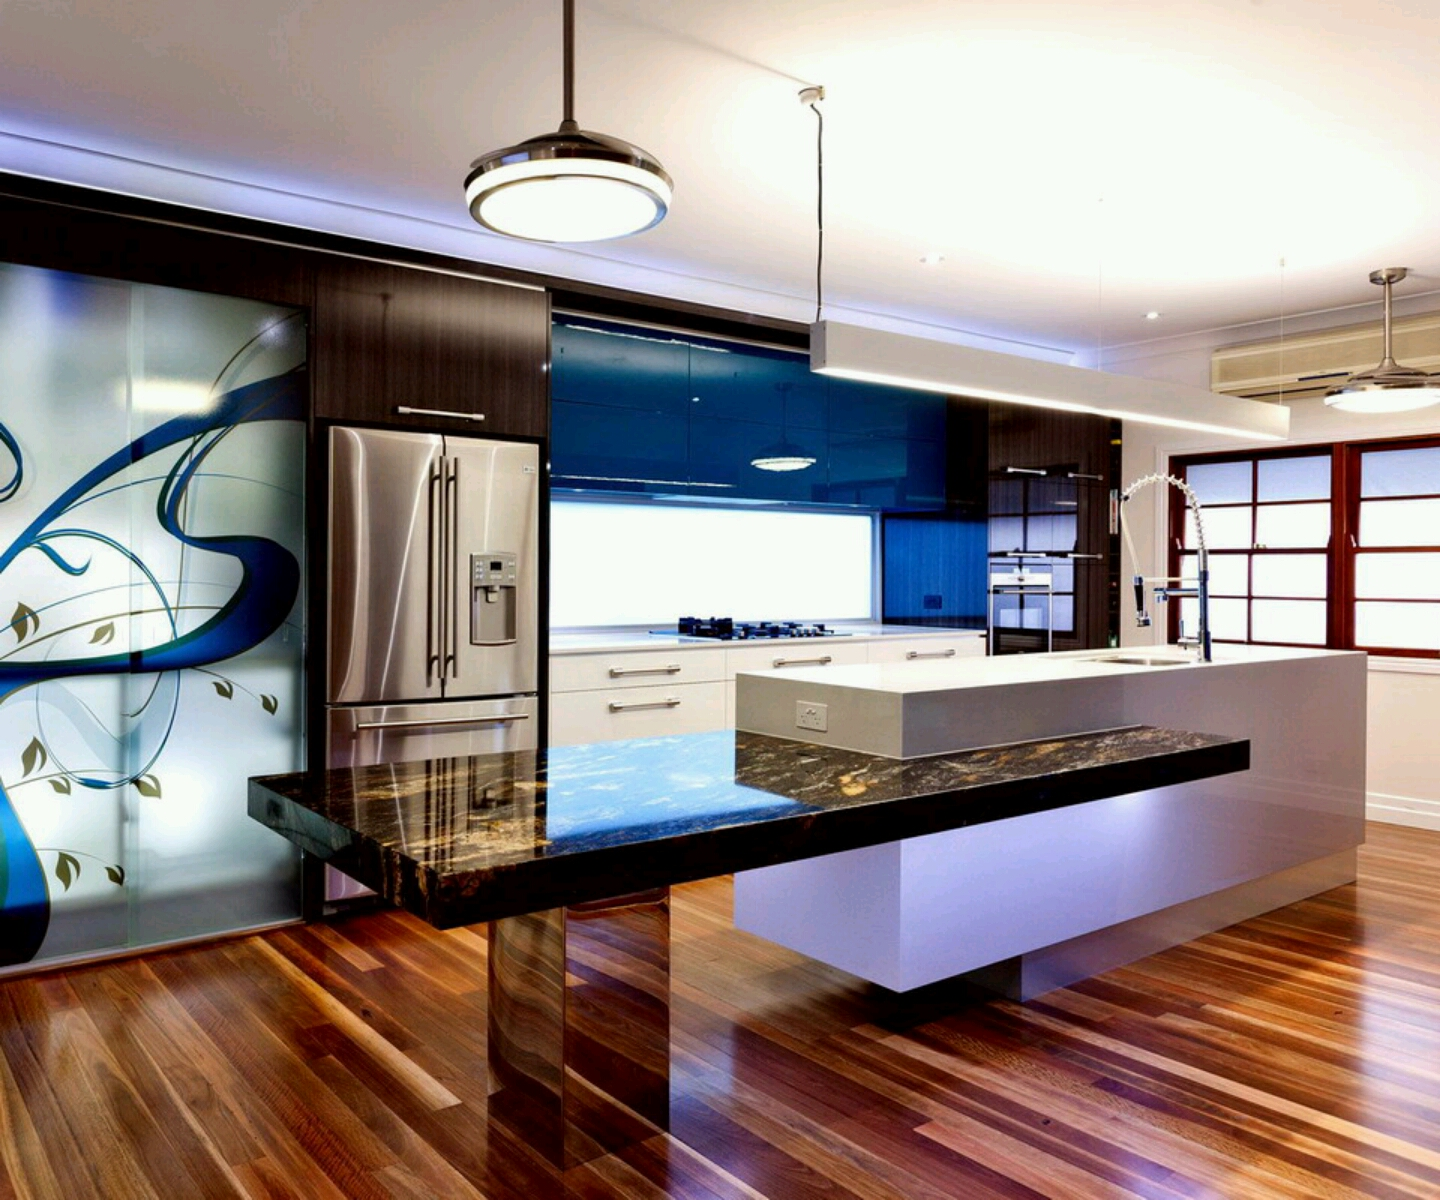 New home designs latest ultra modern kitchen designs ideas for Kitchen interior decorating ideas